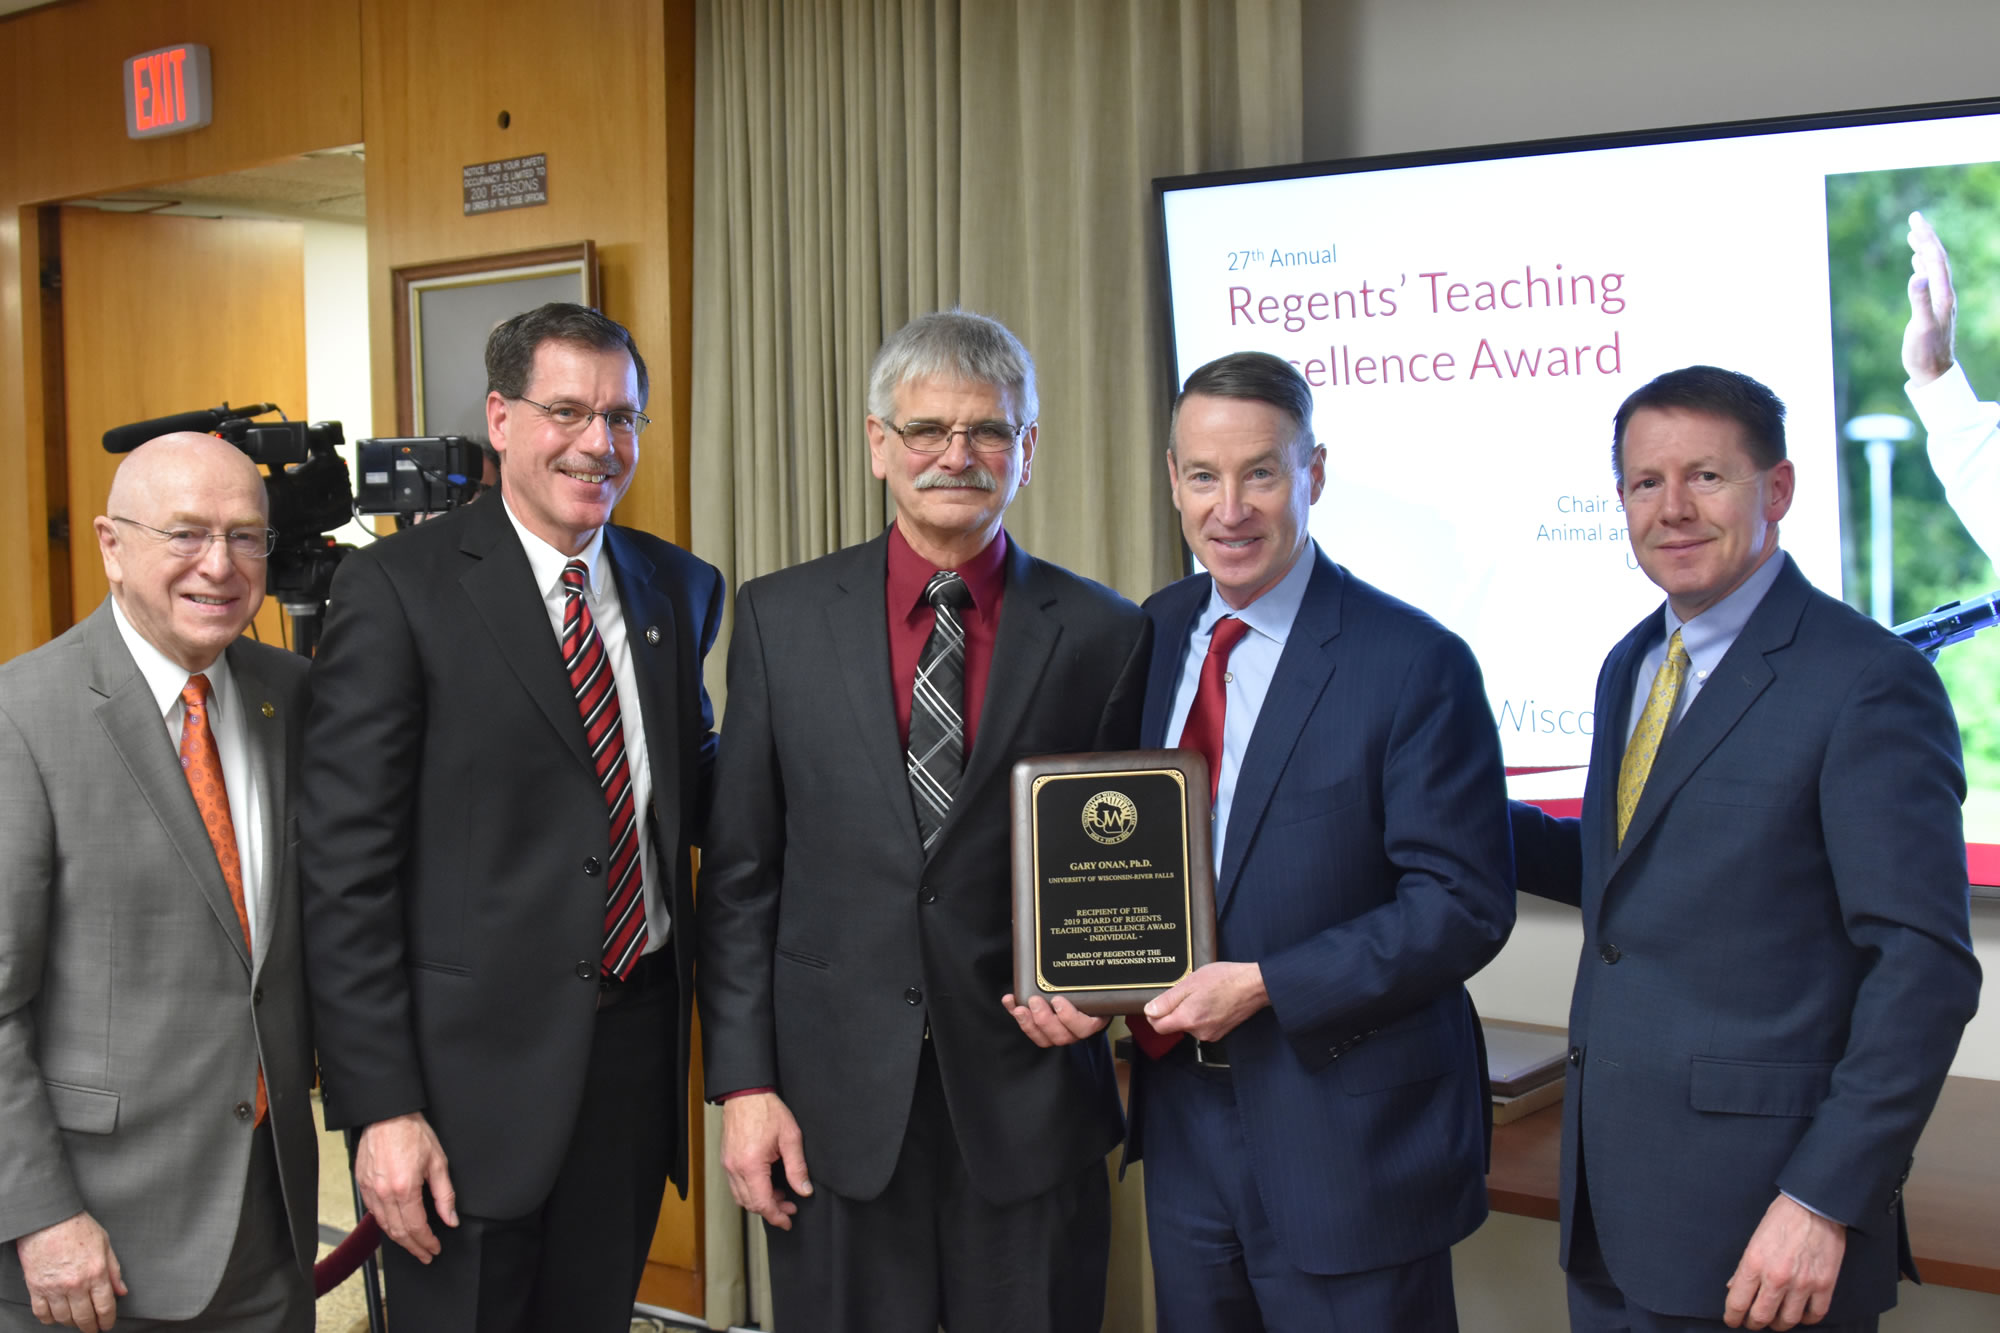 Photo of (from left) President Ray Cross, UW-River Falls Chancellor Dean Van Galen, Dr. Gary Onan, Regent Mike Jones, and Regent President John Robert Behling